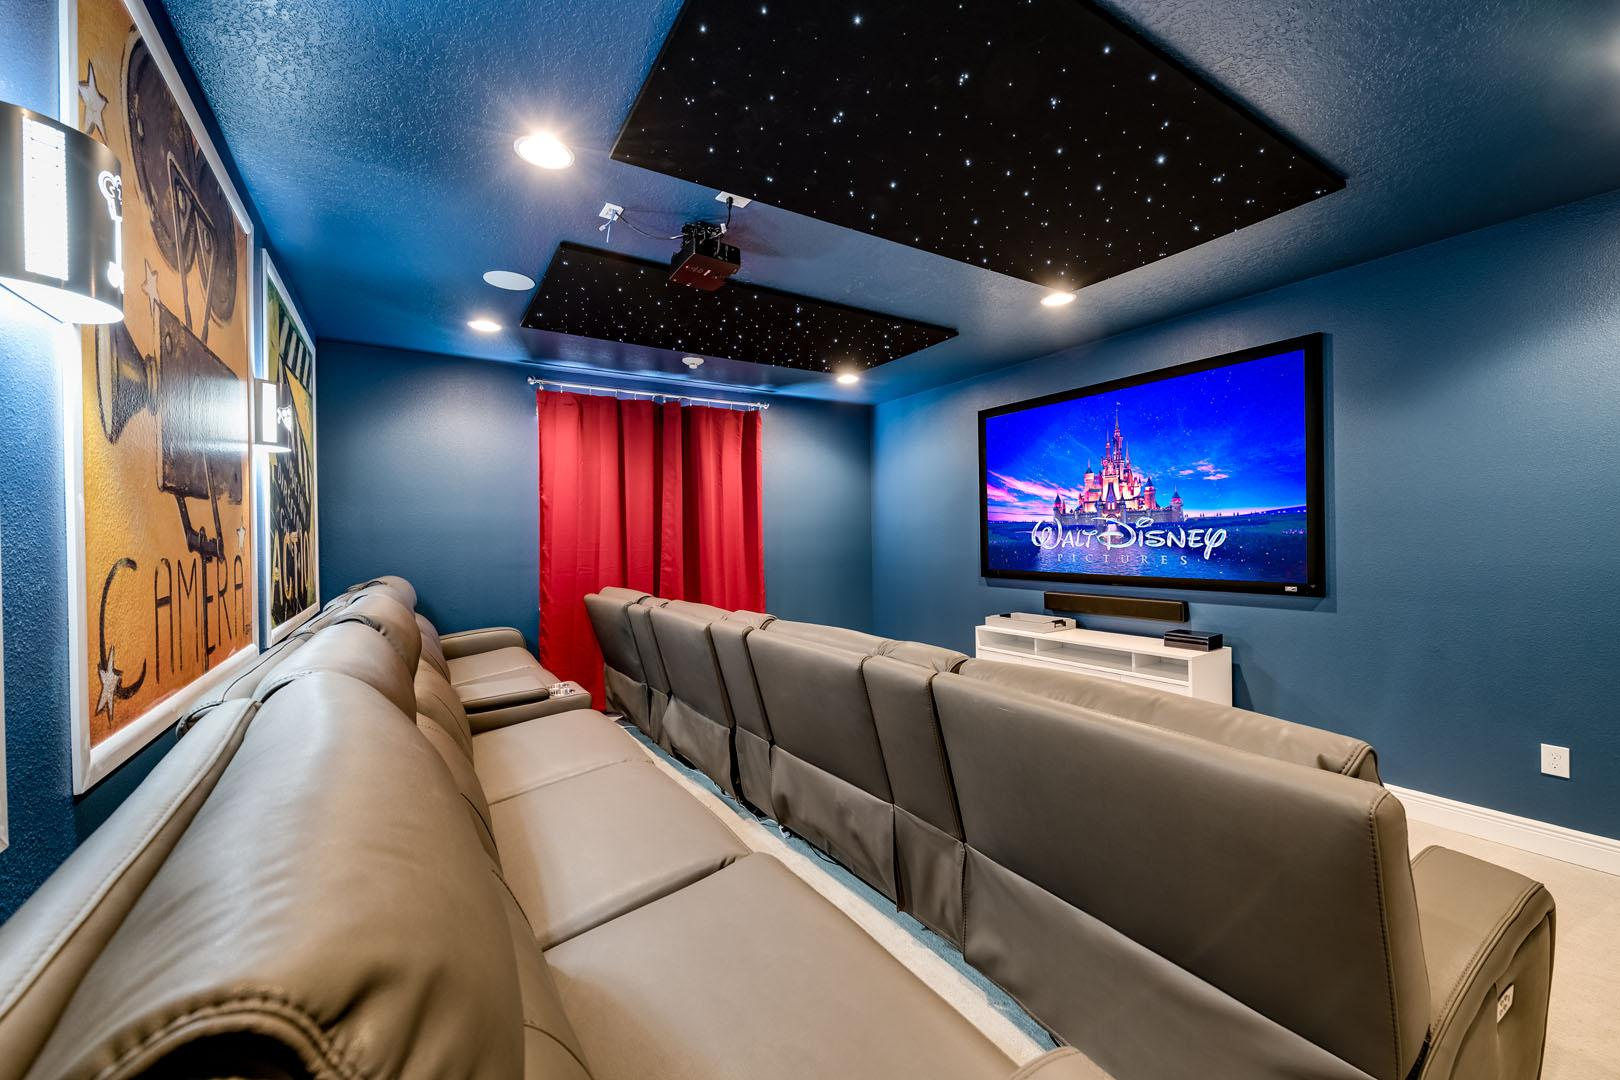 Property Image 1 - Exquisite Home with Theater & Games near Disney